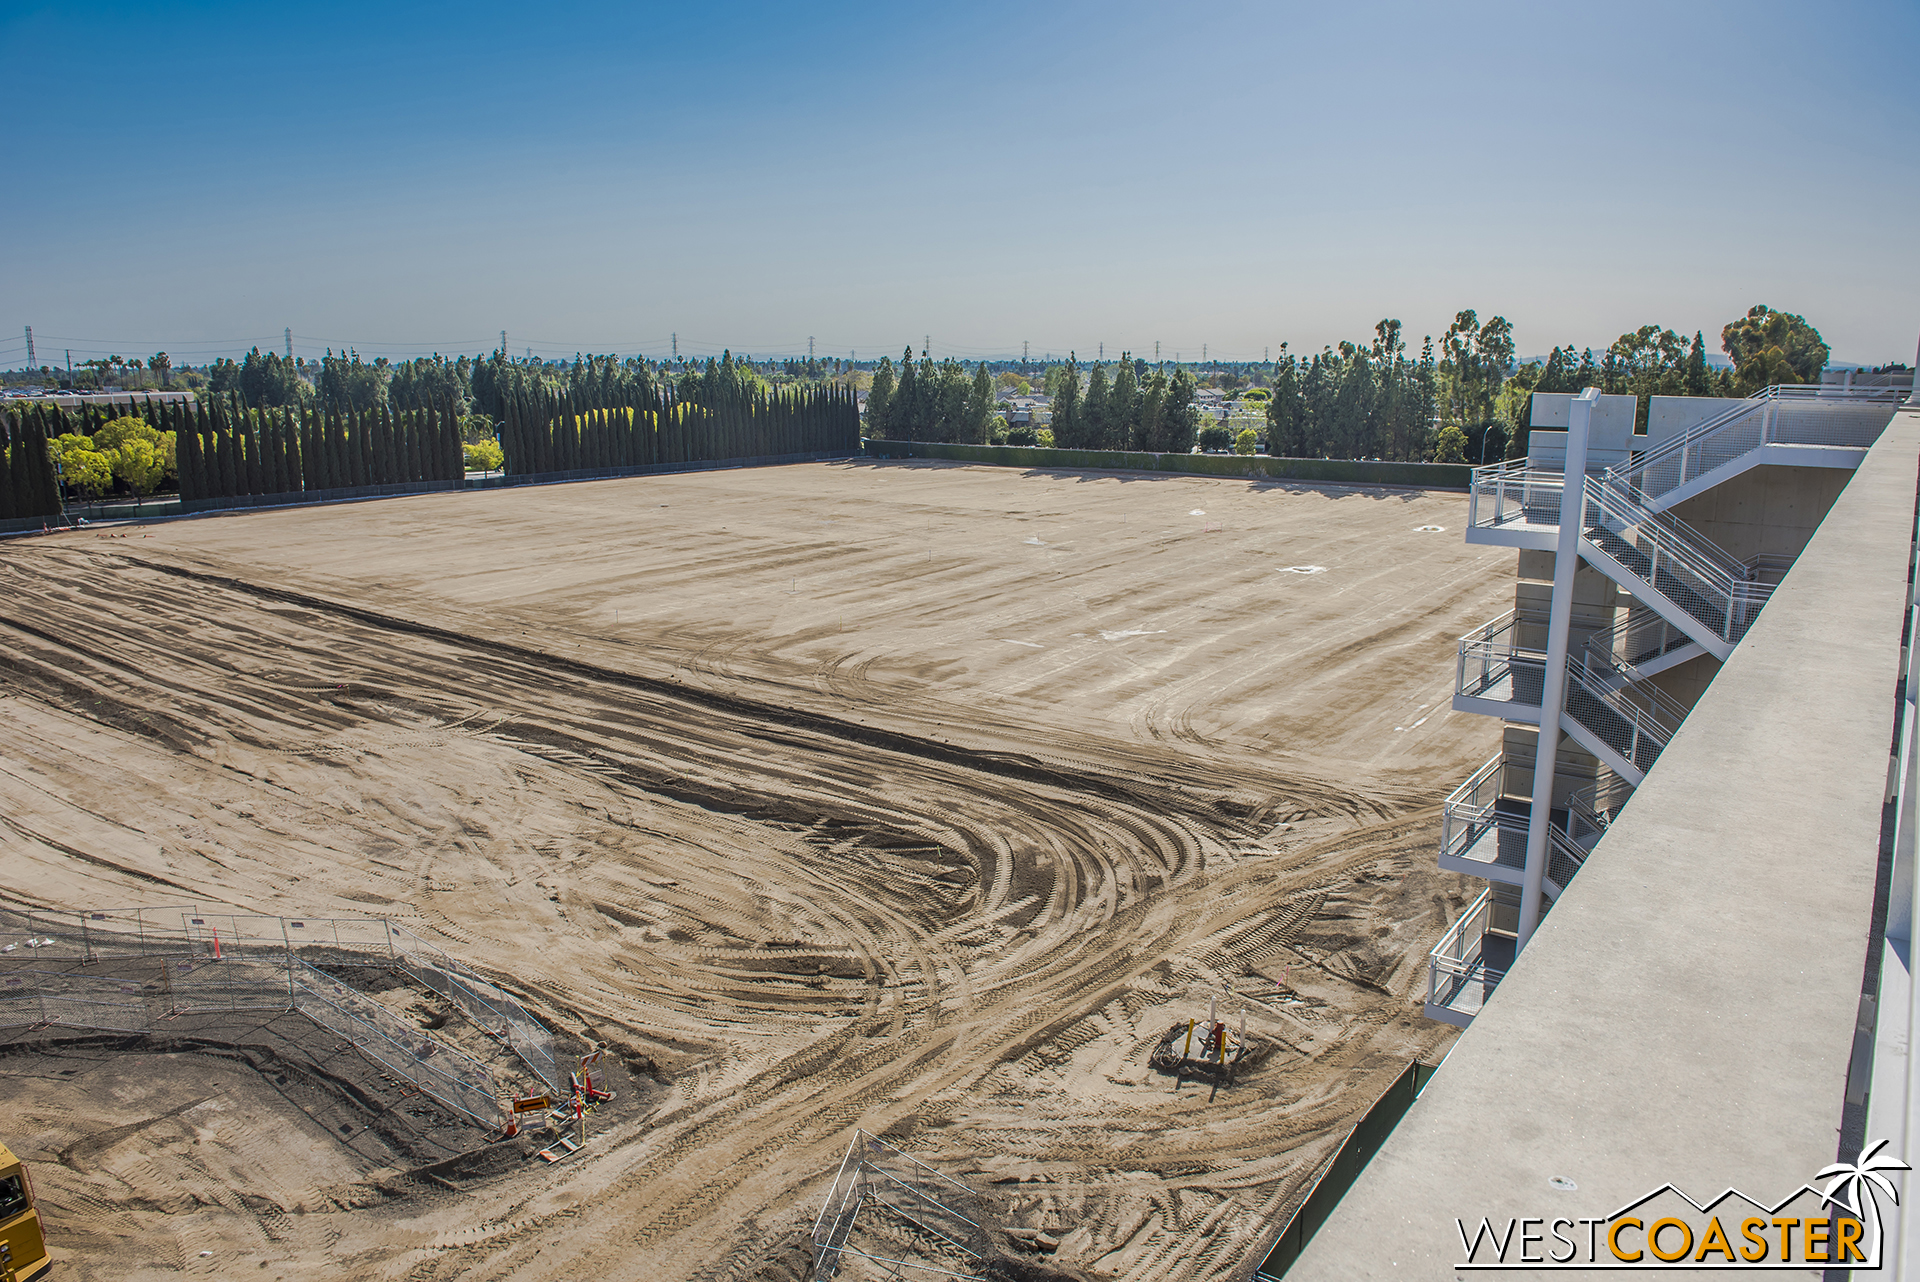 """Grading continues over at the """"Pinocchio"""" Parking Structure (or """"Pinocchio and Friends,"""" as one reader suggested, or even """"Mickey and Friends and Friends,"""" as another offered)."""